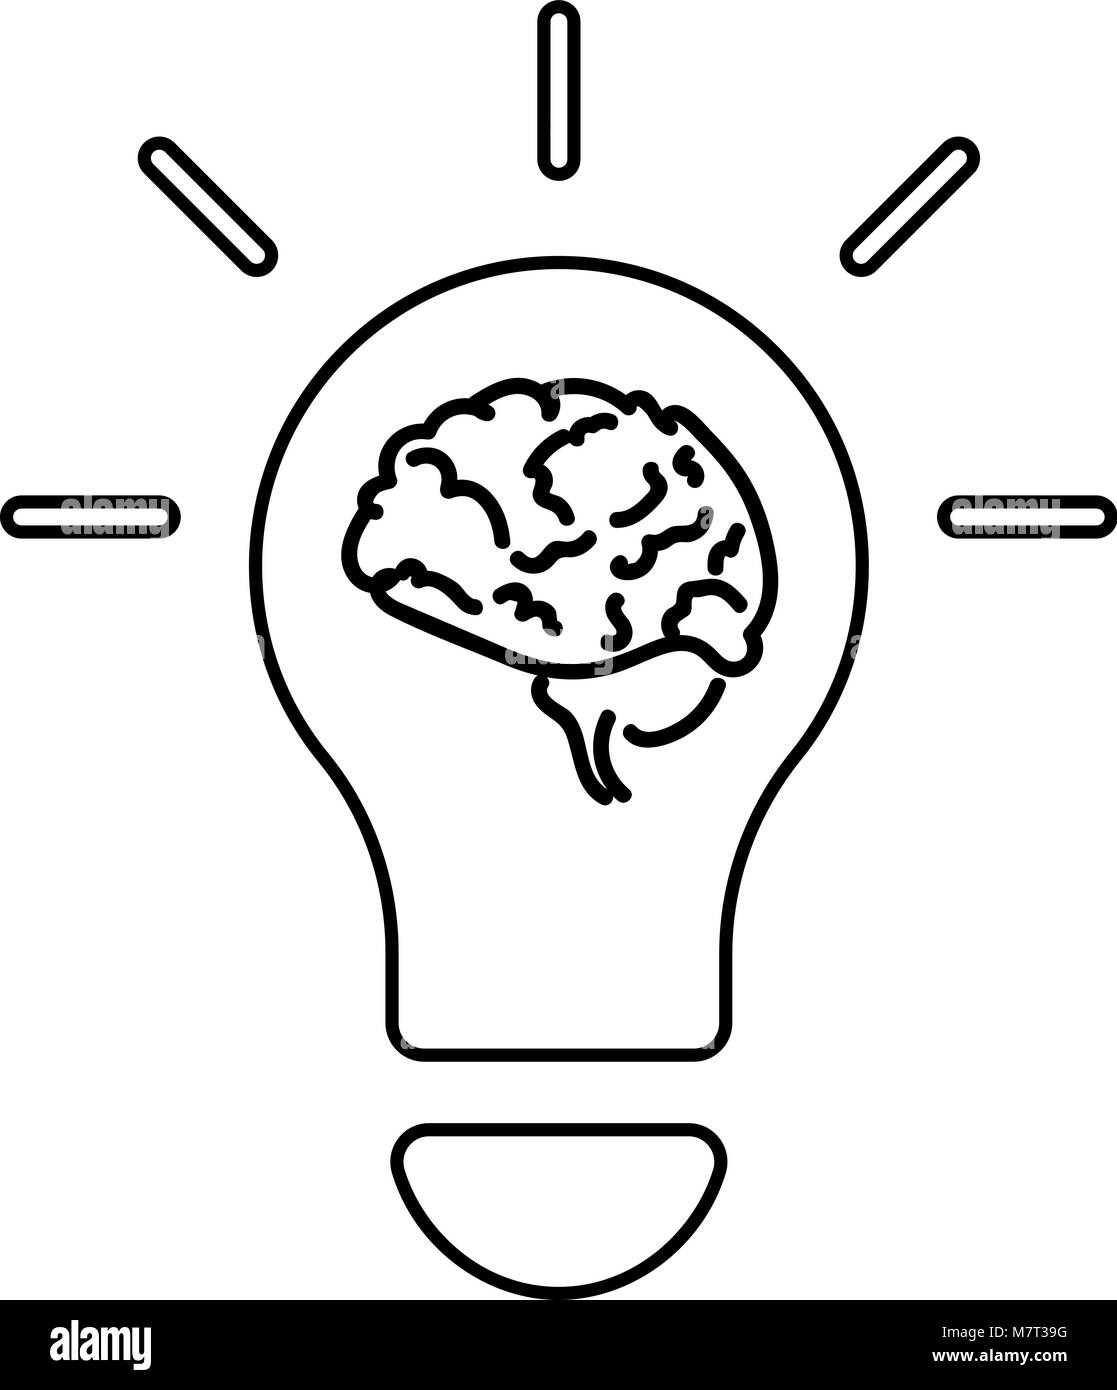 Light bulb and brain line icon, outline vector - Stock Image